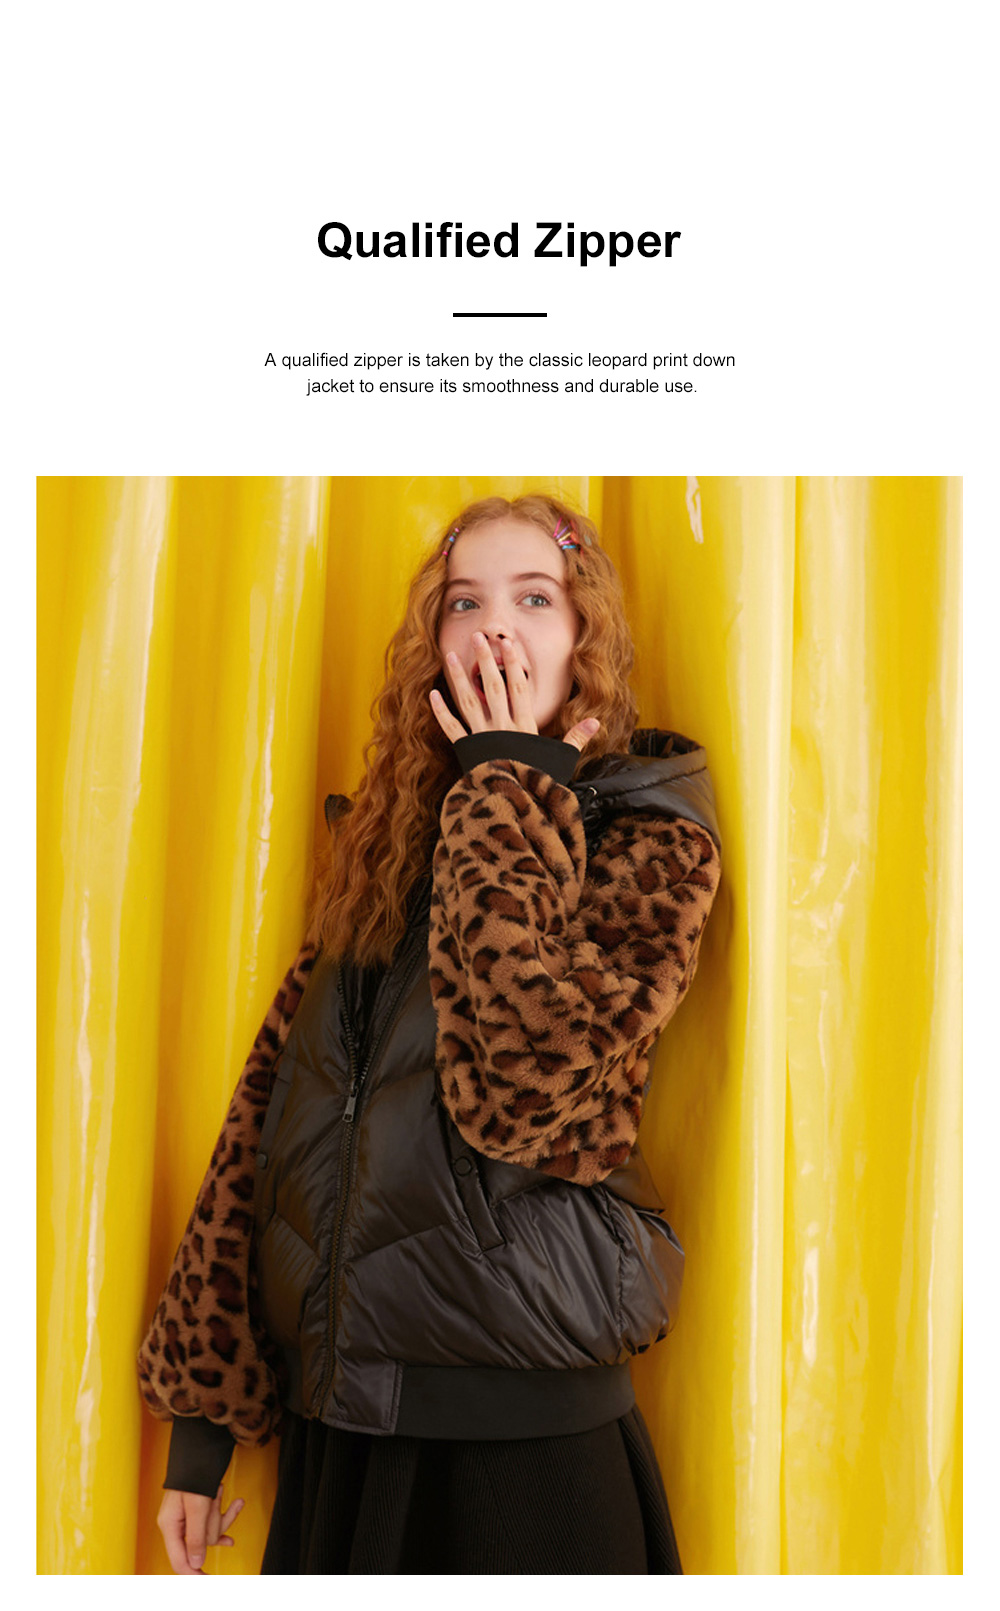 ELF SACK Classic Leopard Print Down Jacket for Women Winter Wear Thickened Splicing Hoody Down Coat Thermal Down Jacket 3